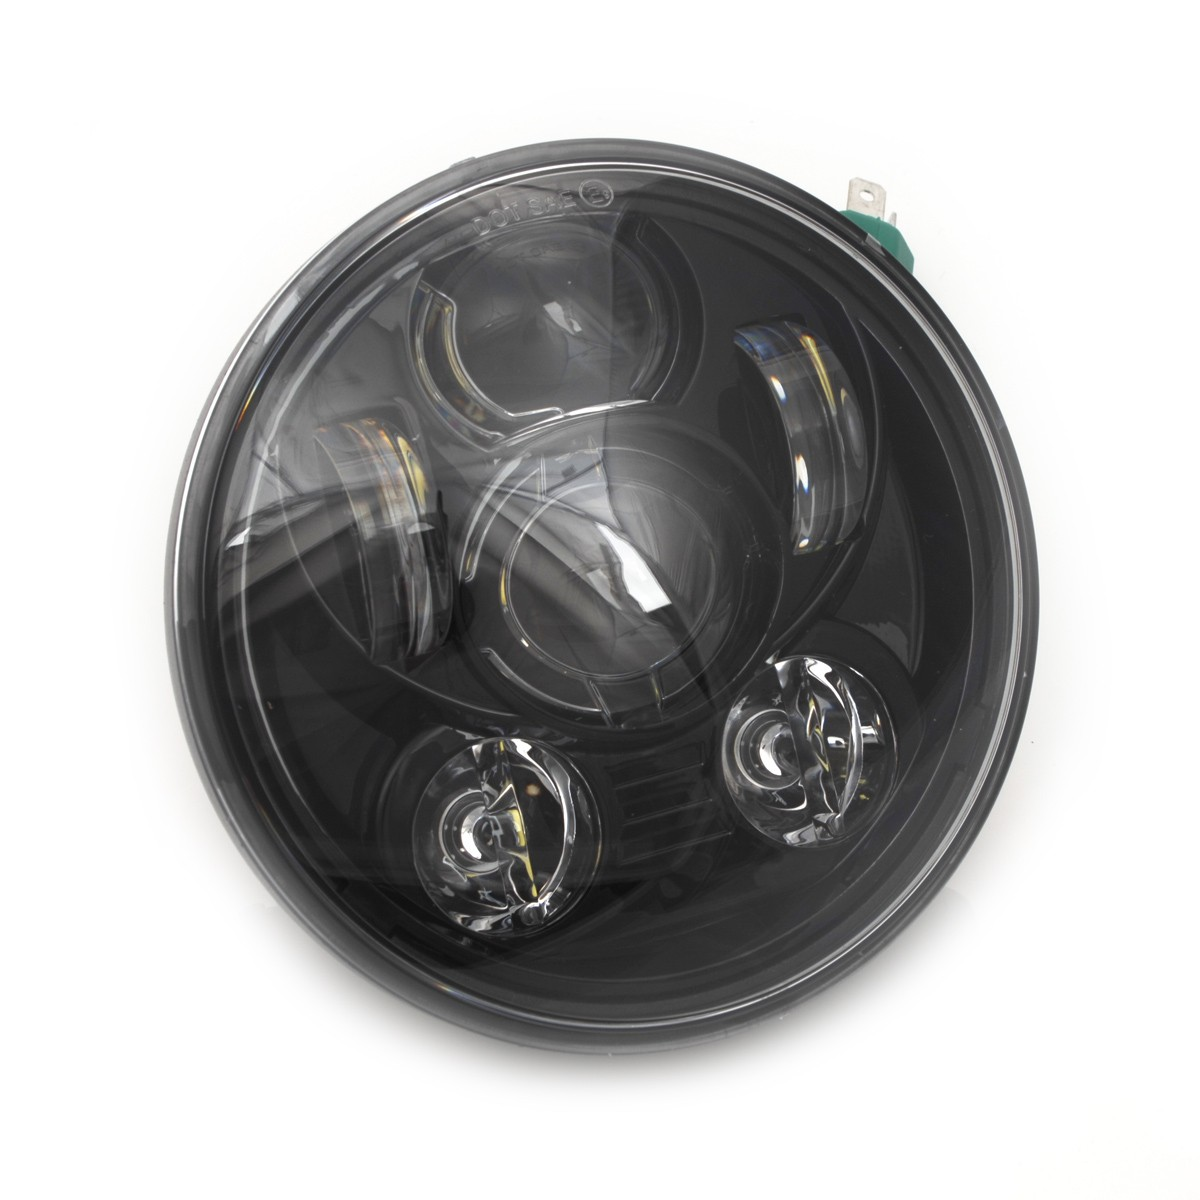 BLACK SIX LED FRONT HEADLIGHT BODY EU APPROVED 5 75